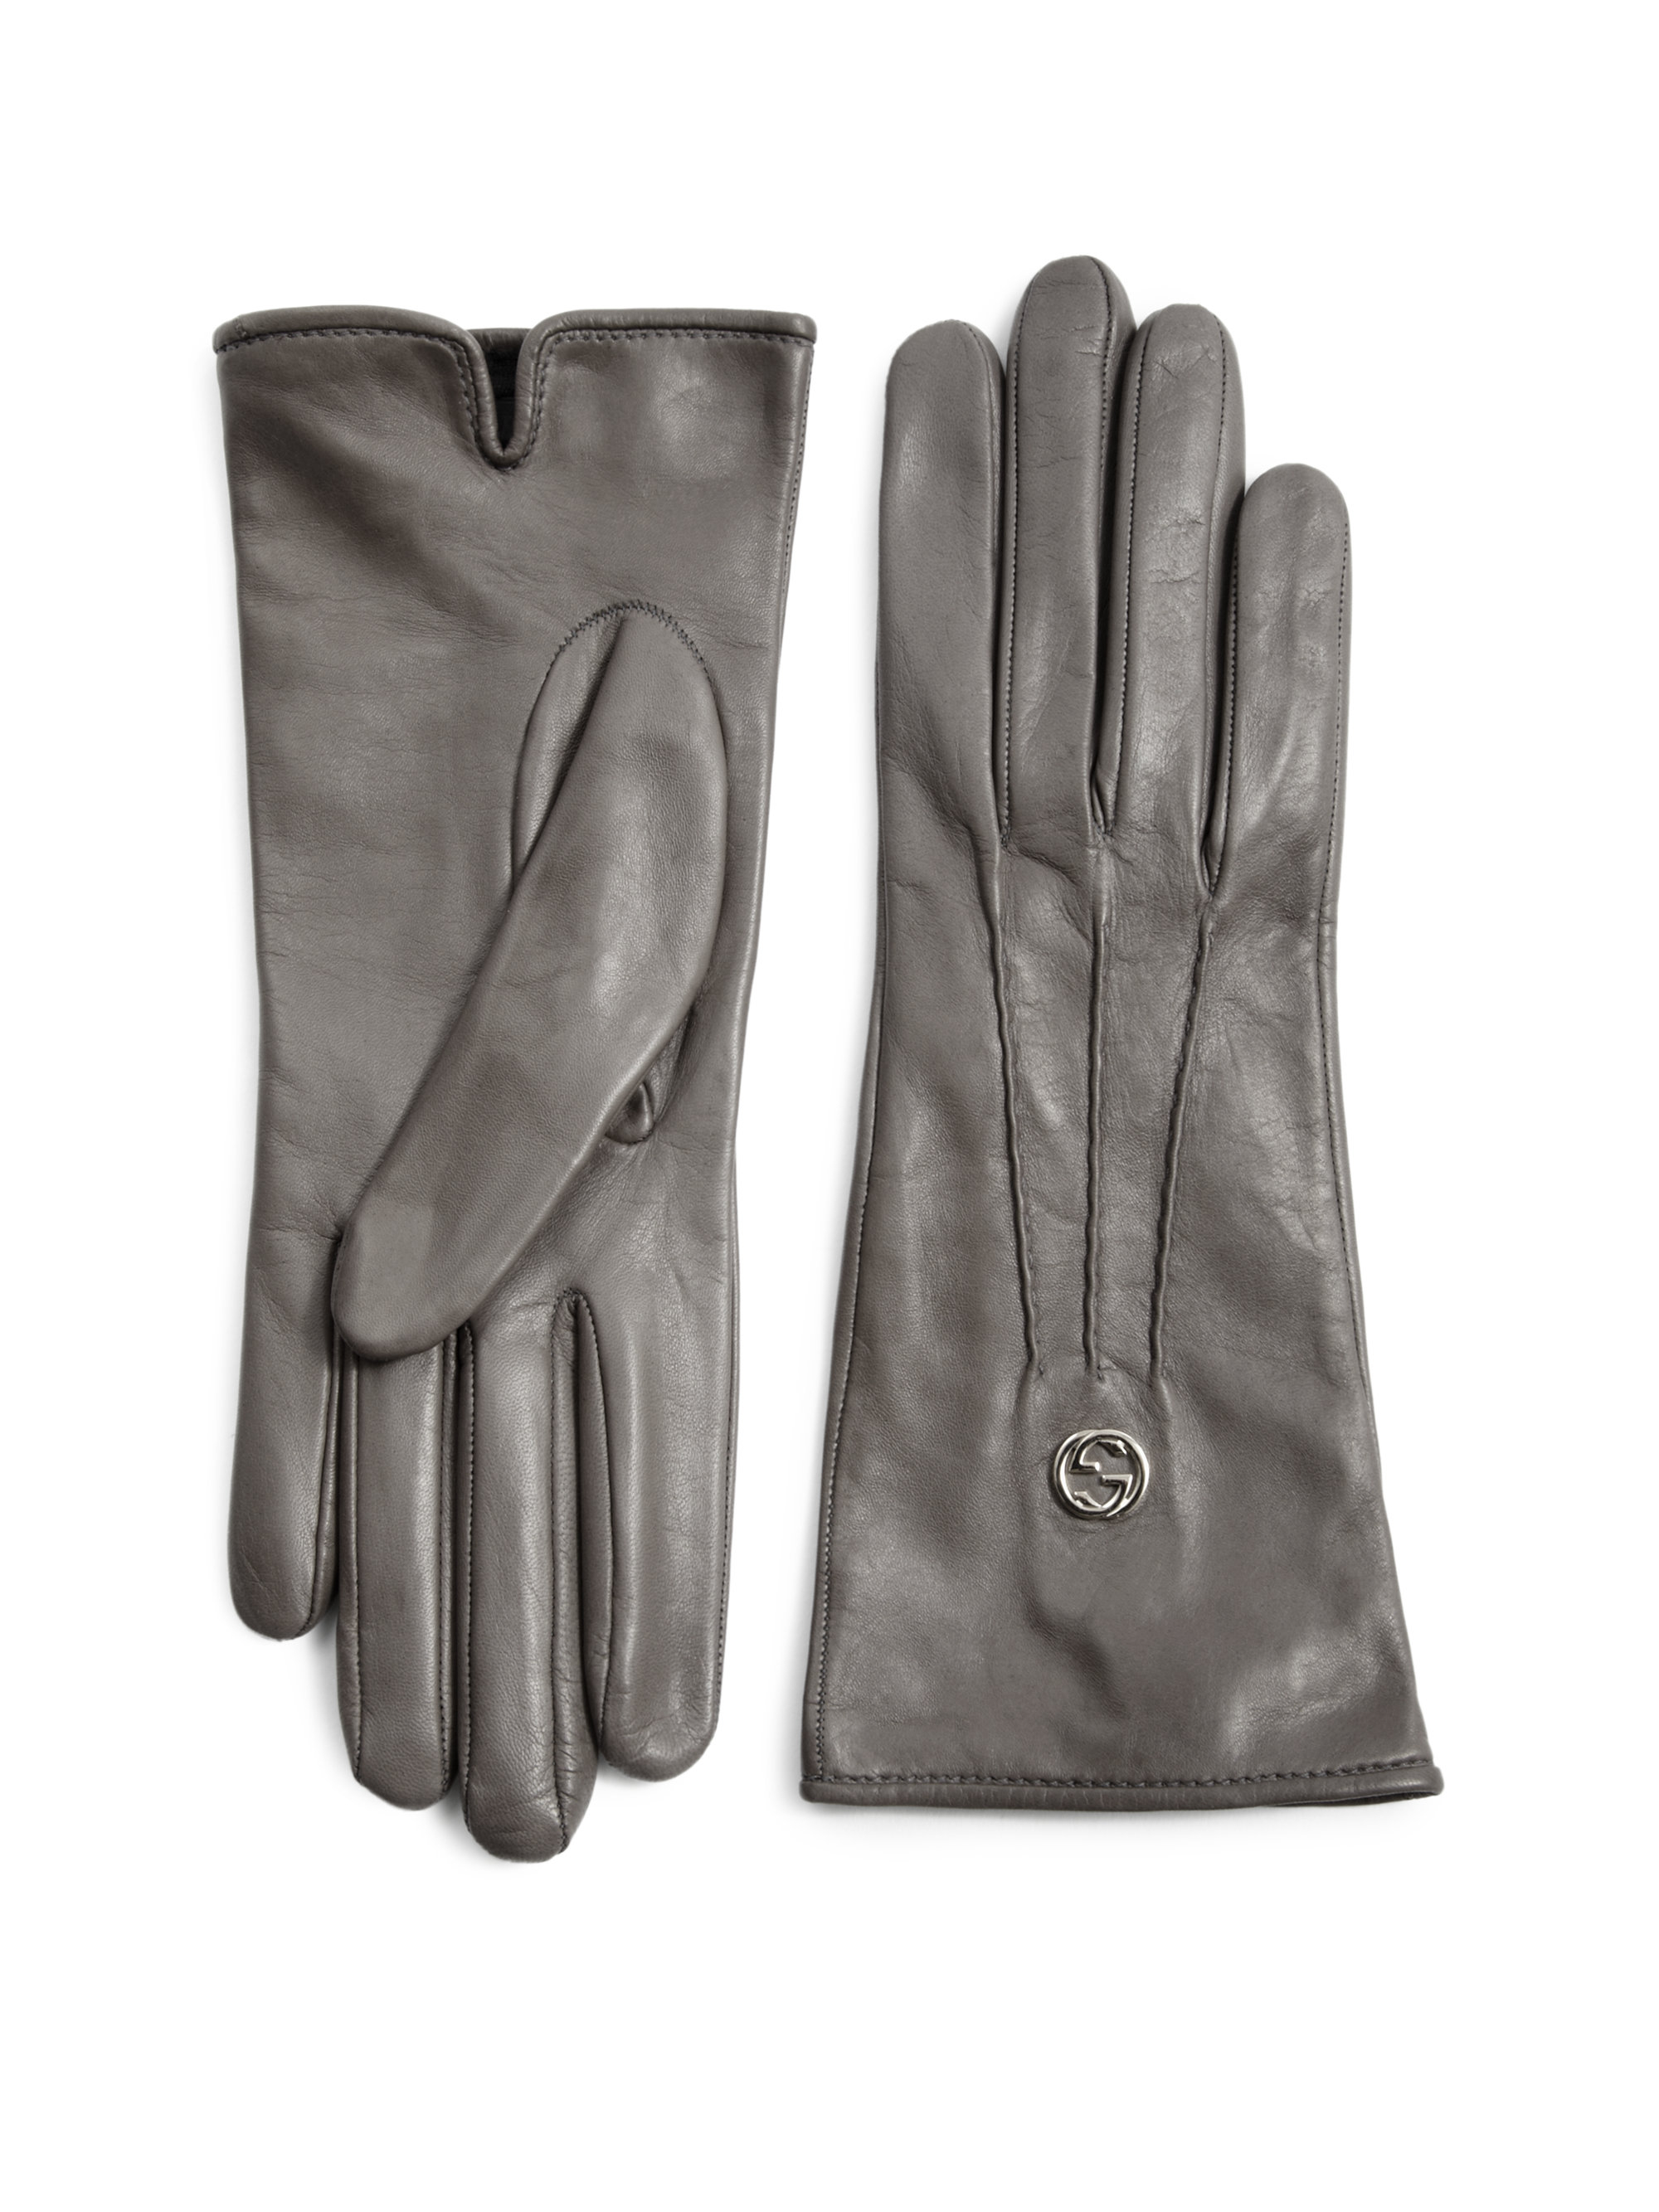 Gala Gloves Italian Leather Lined Glove Guanti Donna